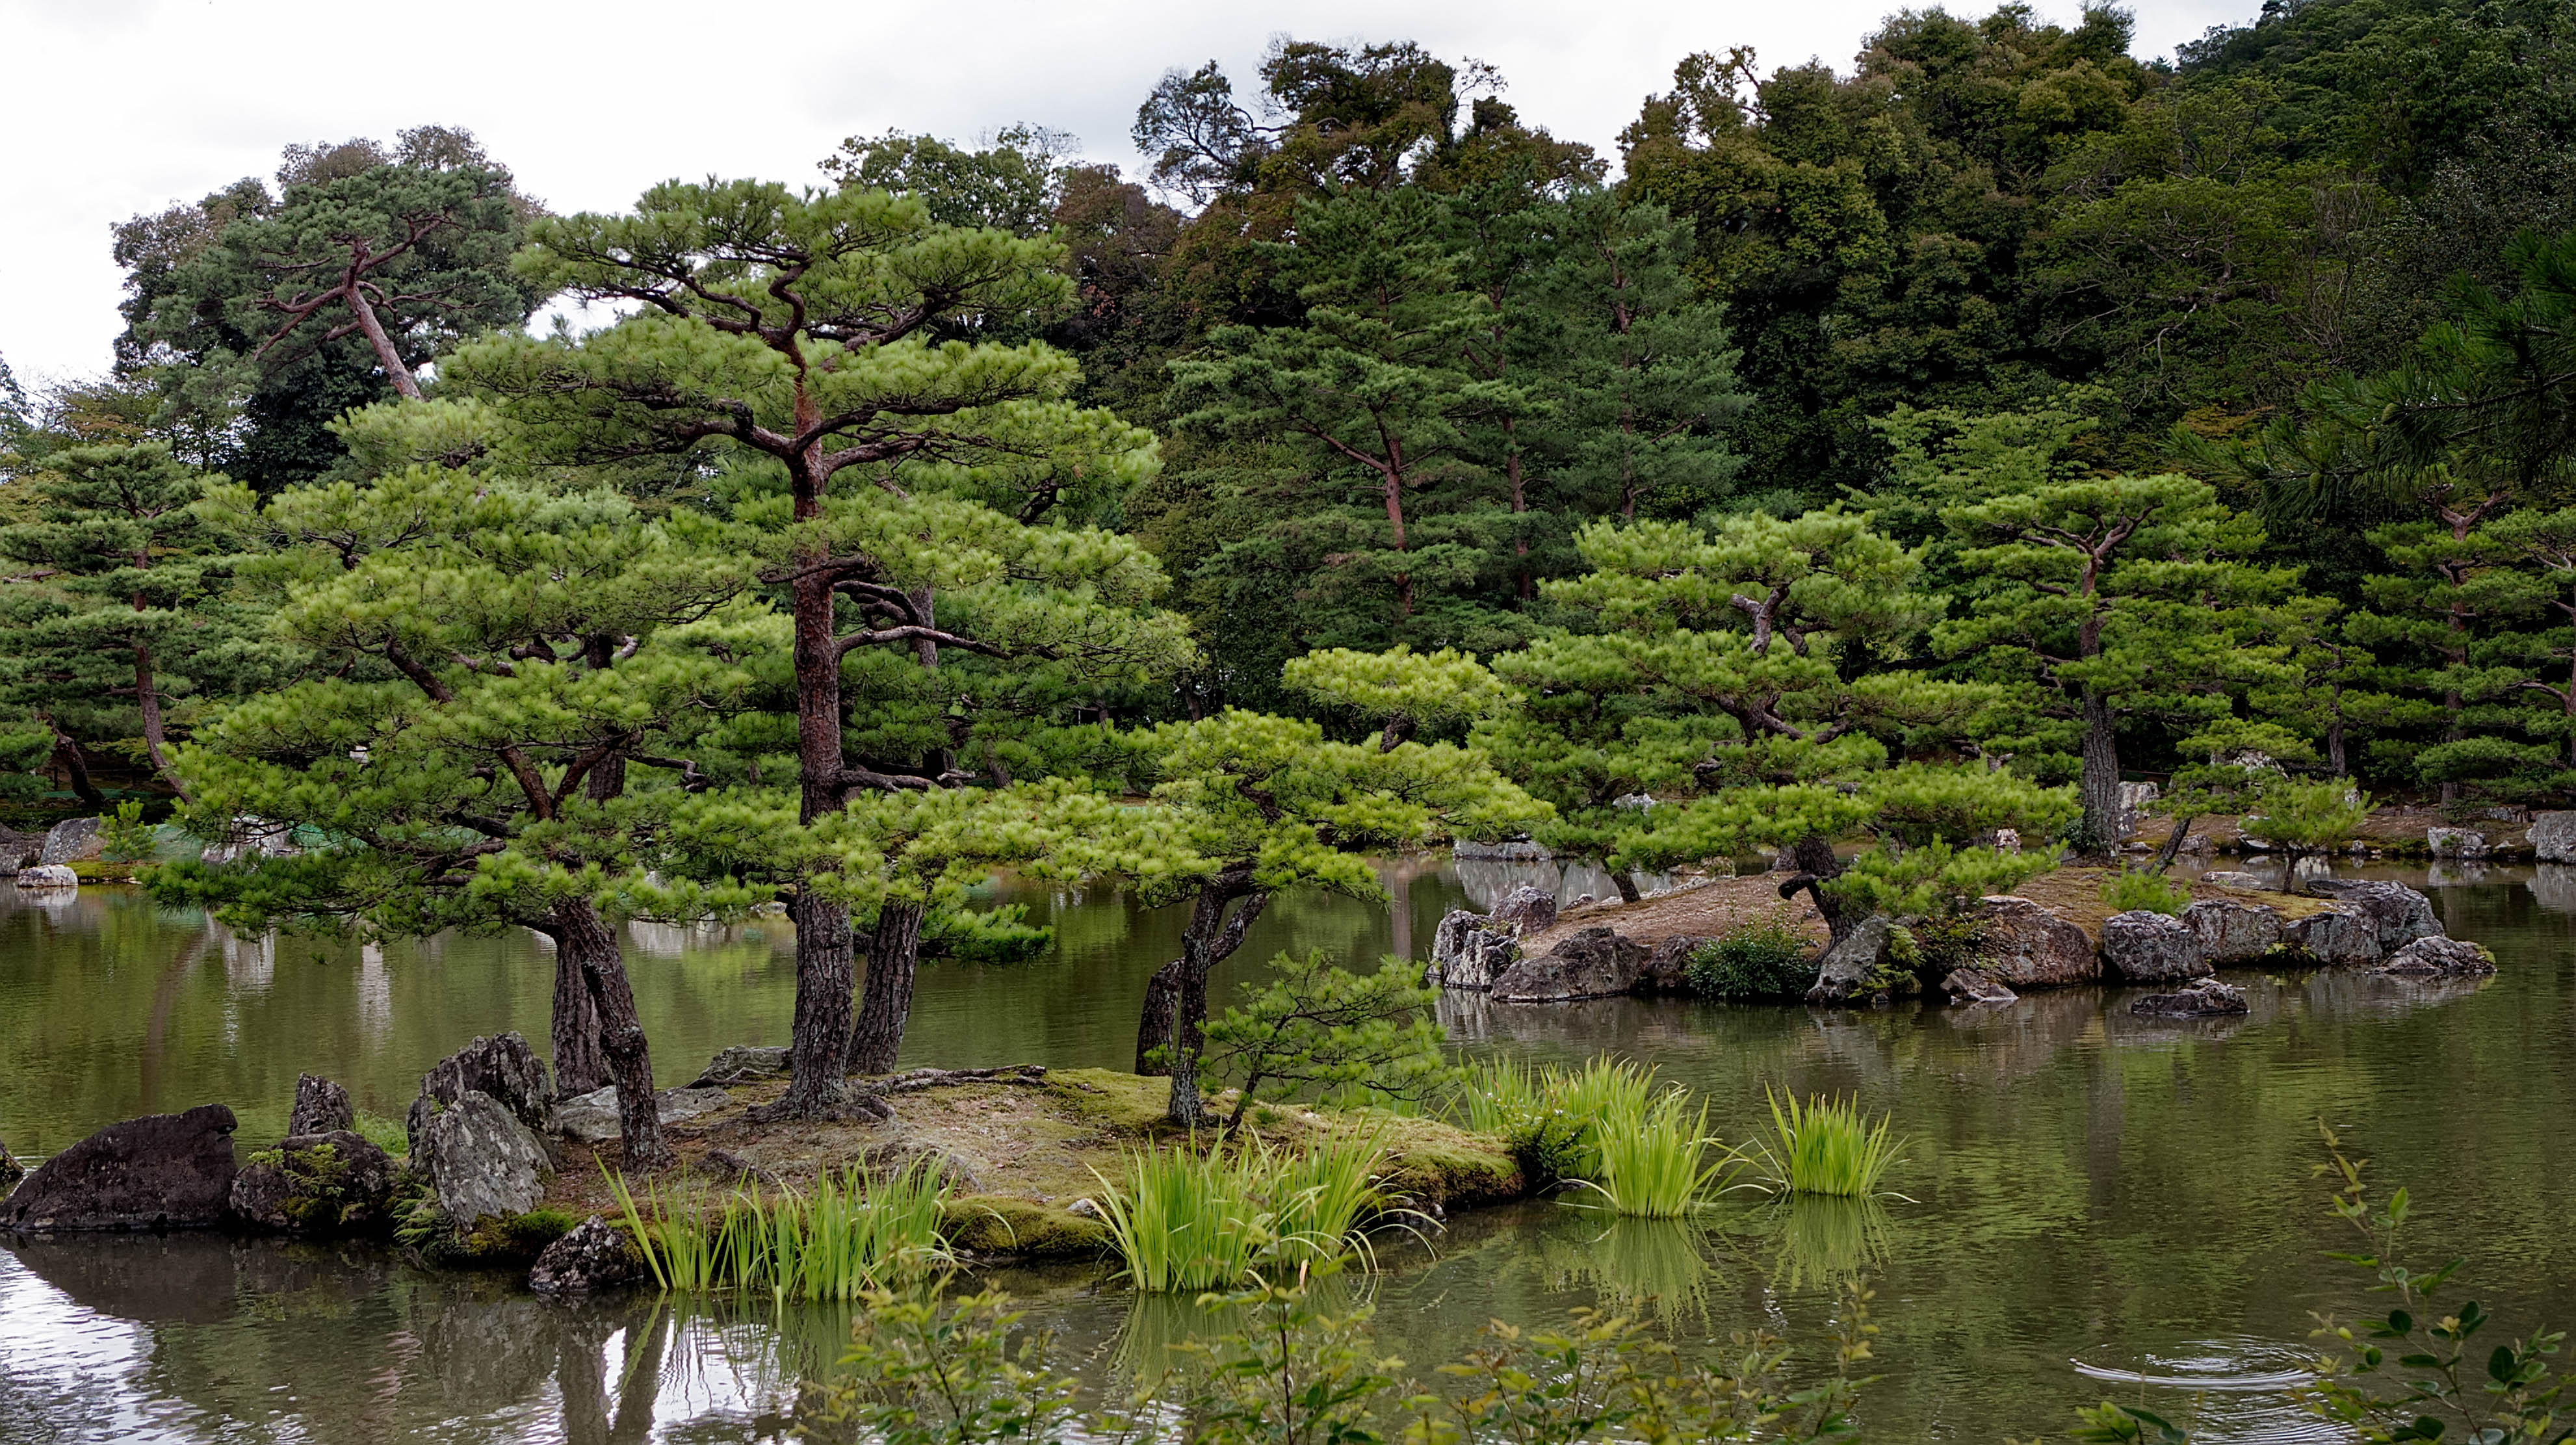 Free download high resolution image - free image free photo free stock image public domain picture -日本庭園、京都